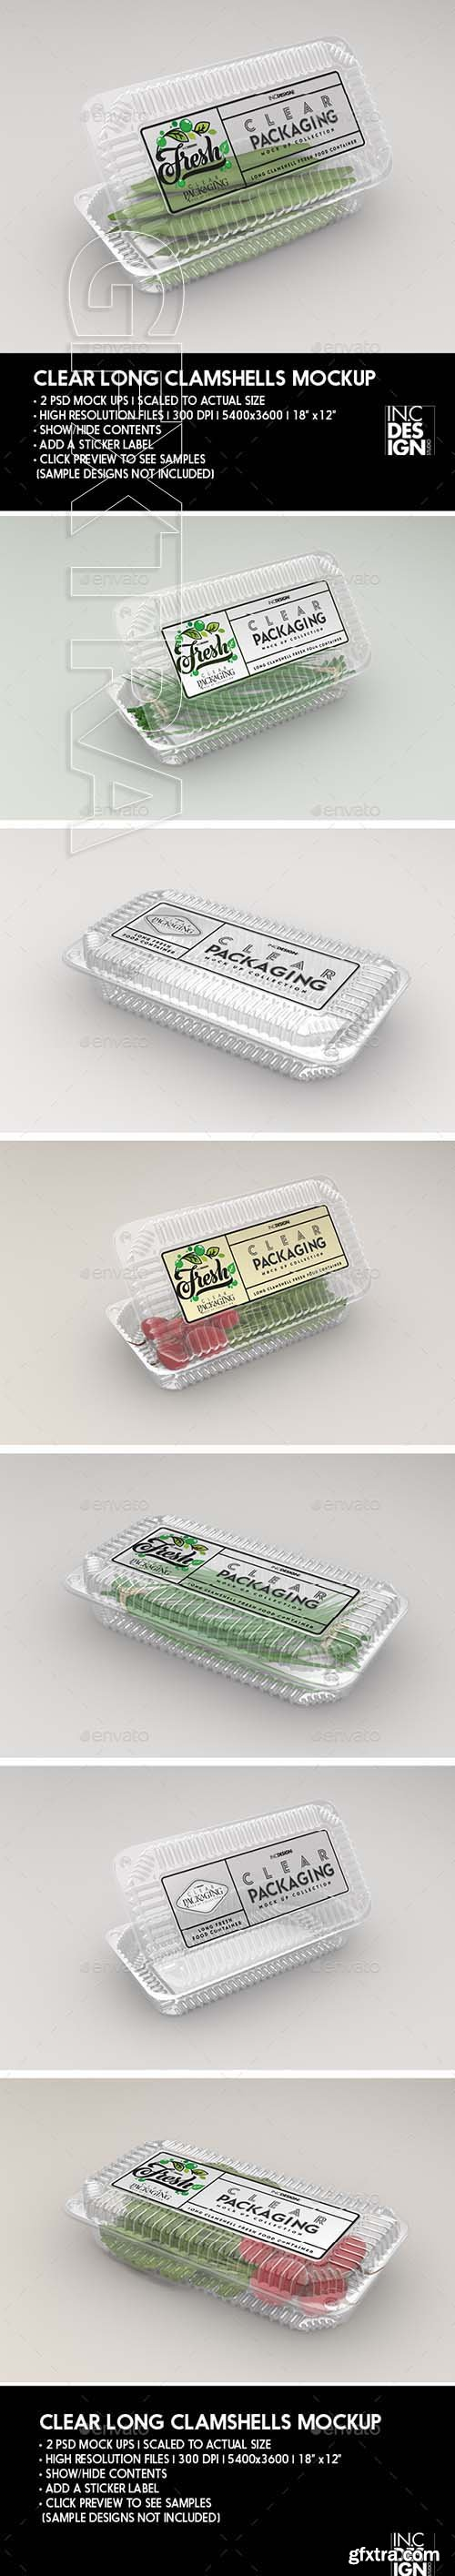 GR - Clear Long Clamshell Packaging Mockup 22071931